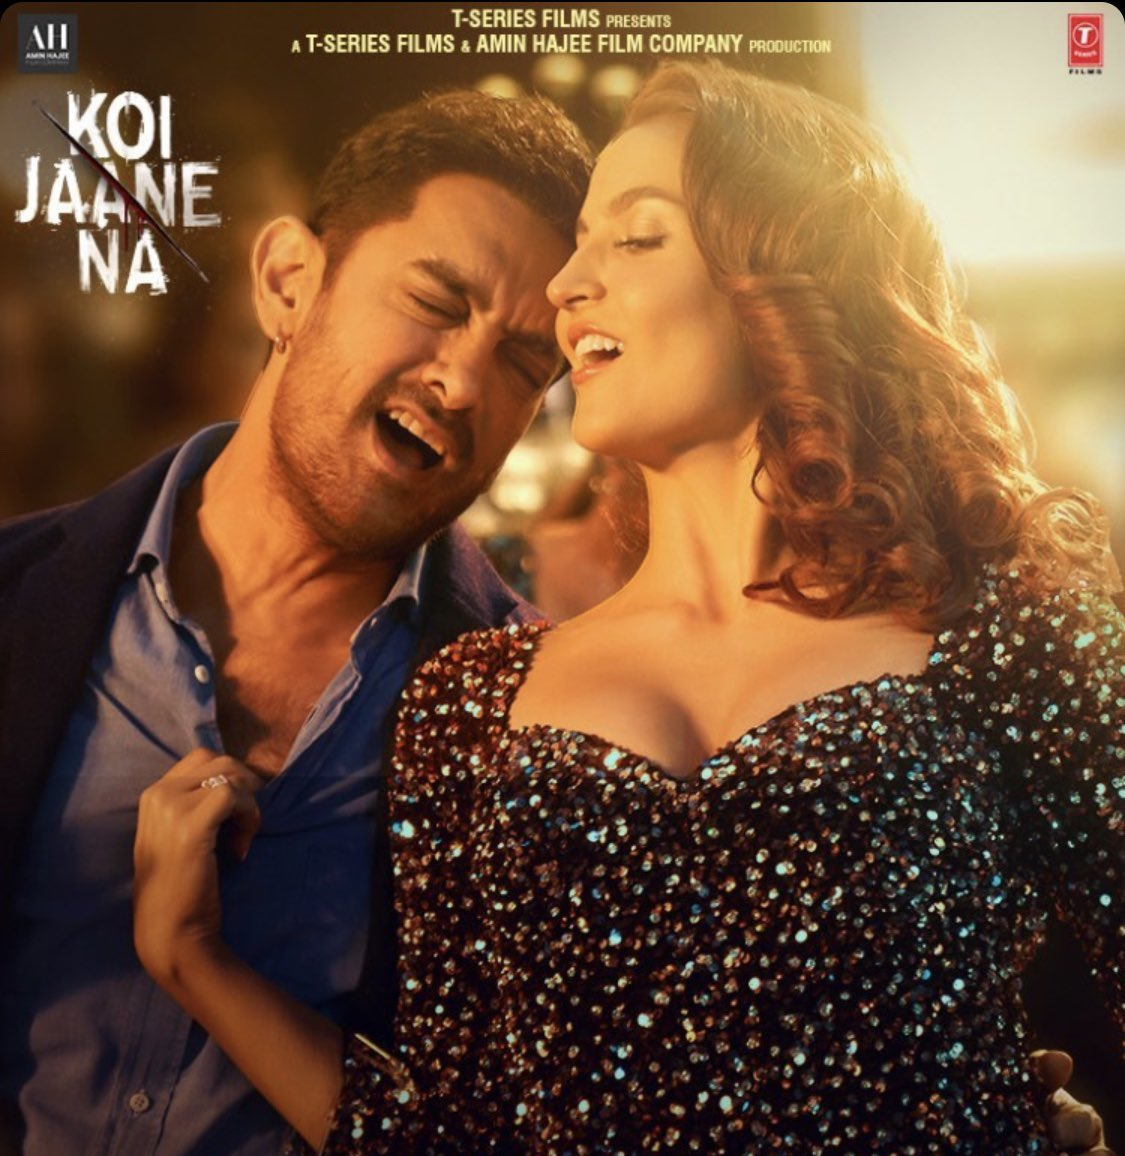 Har Funn Maula (Koi Jaane Na) 2021 Hindi Video Song 1080p HDRip 90MB Download